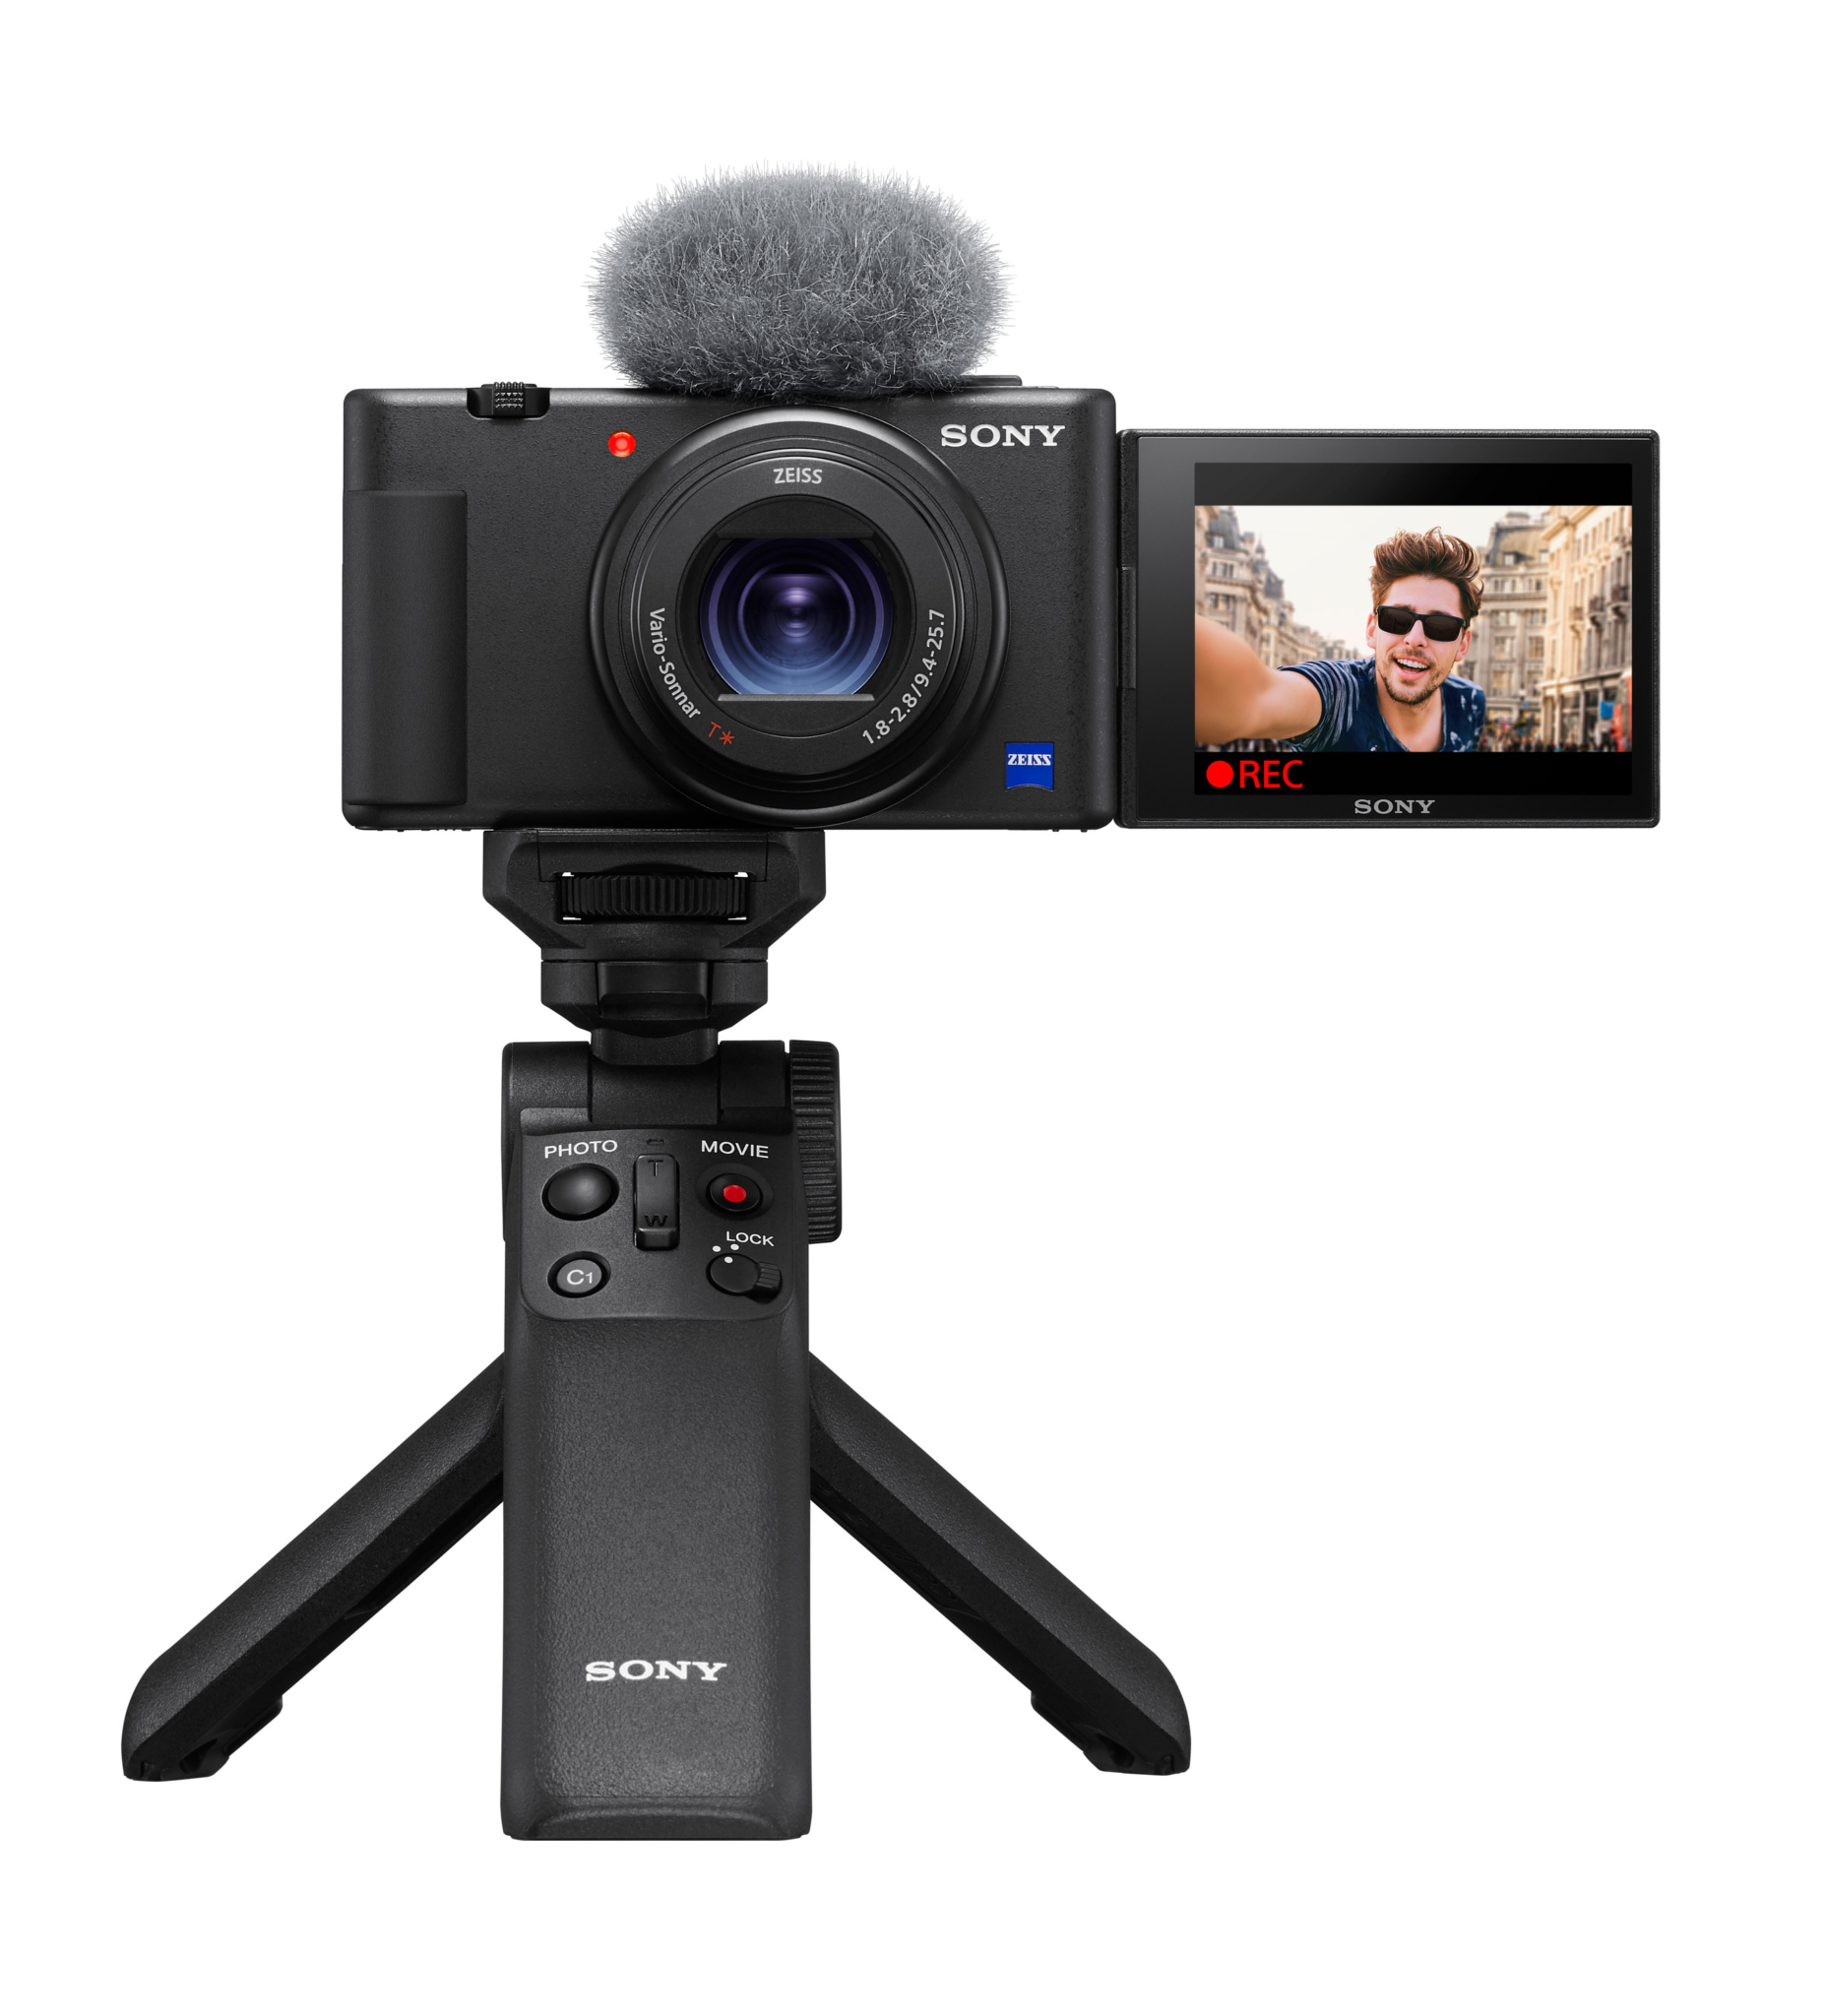 SONY ZV-1 compact camera for video blogging